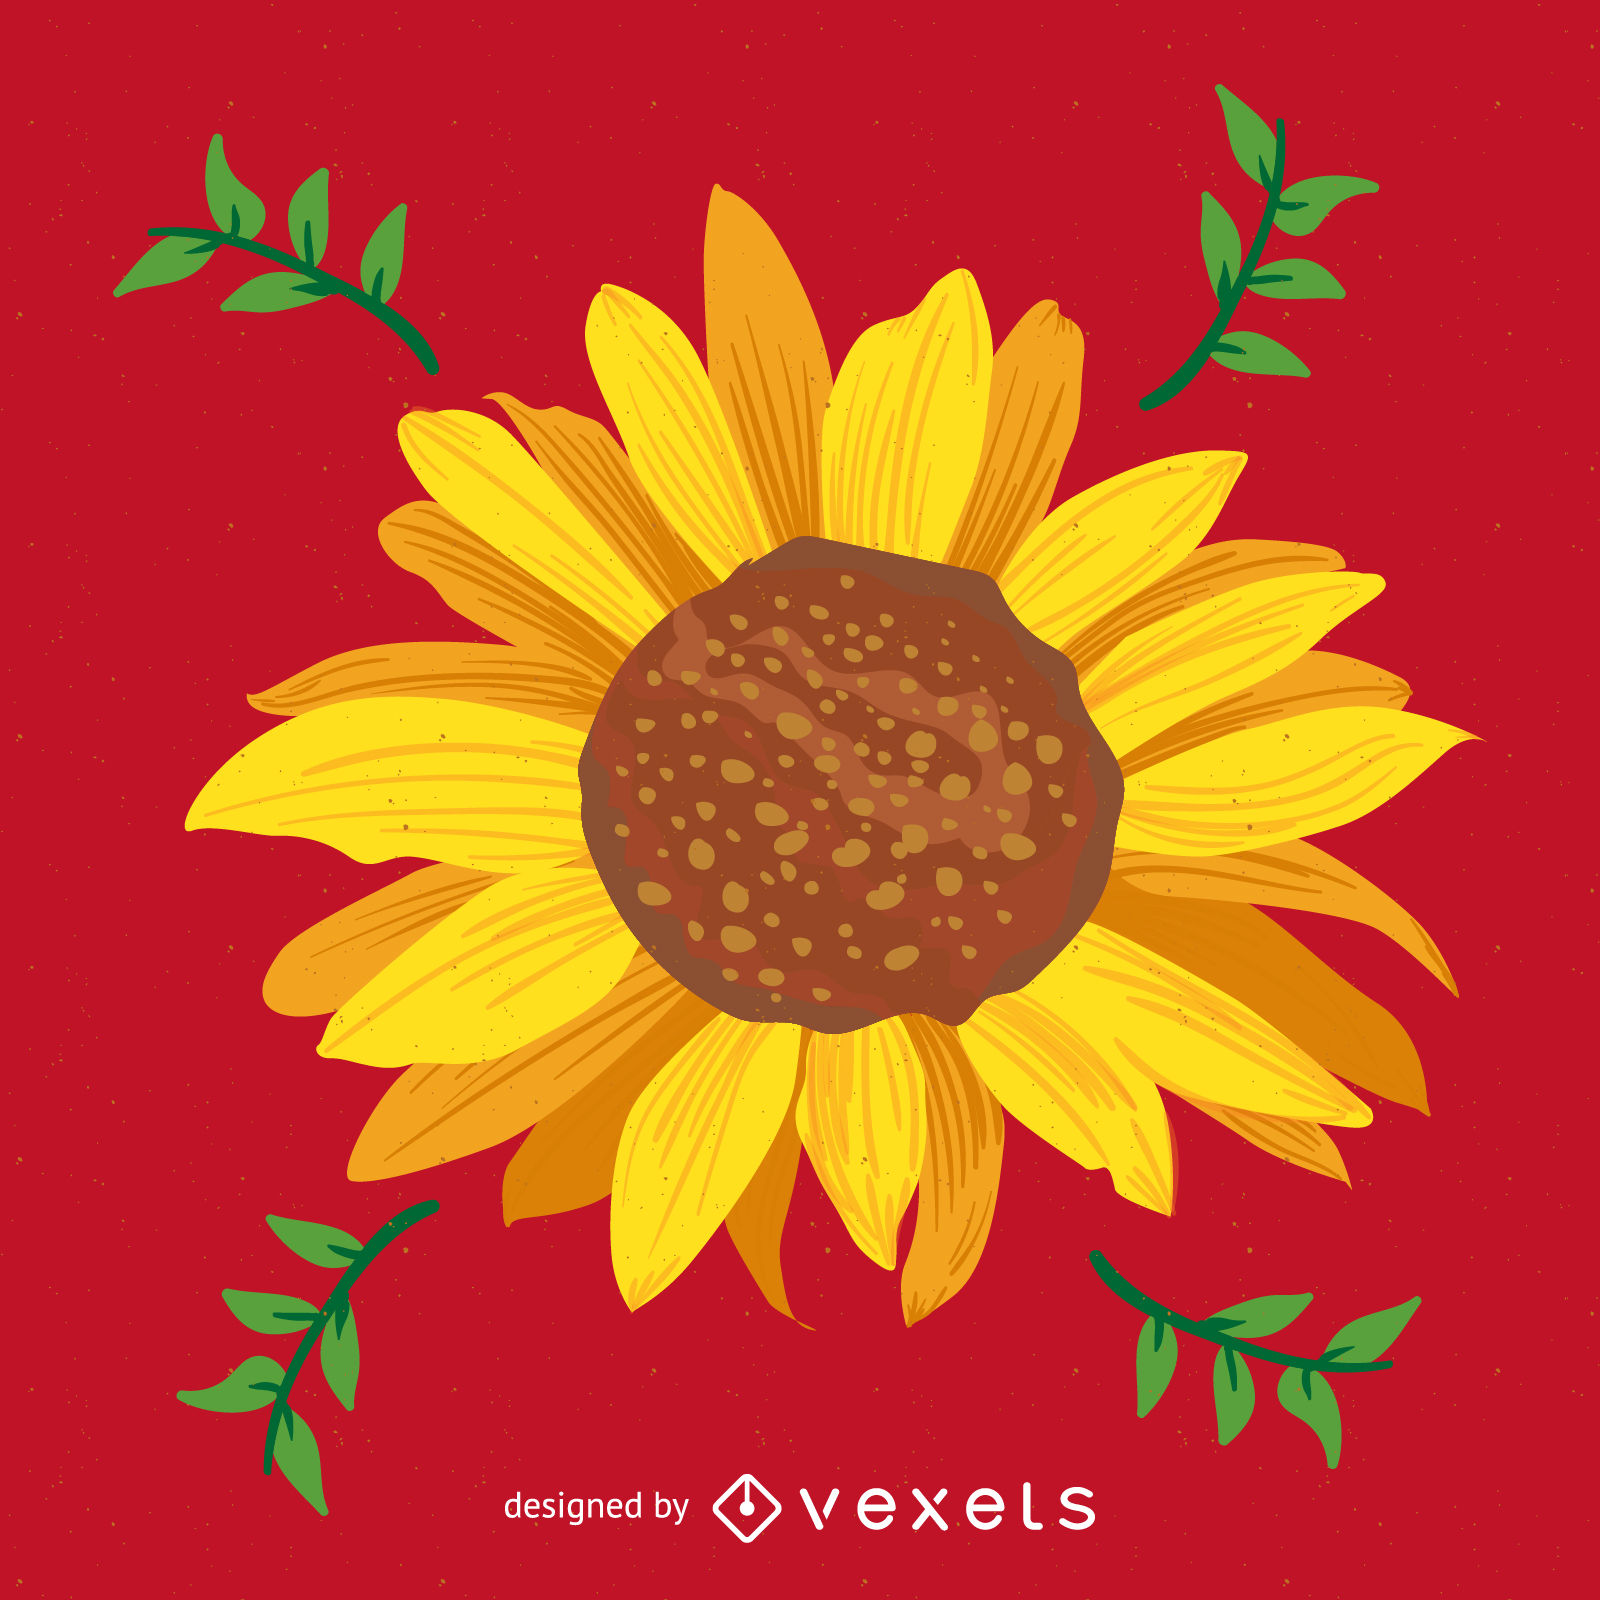 Bright sunflower illustration - Vector download